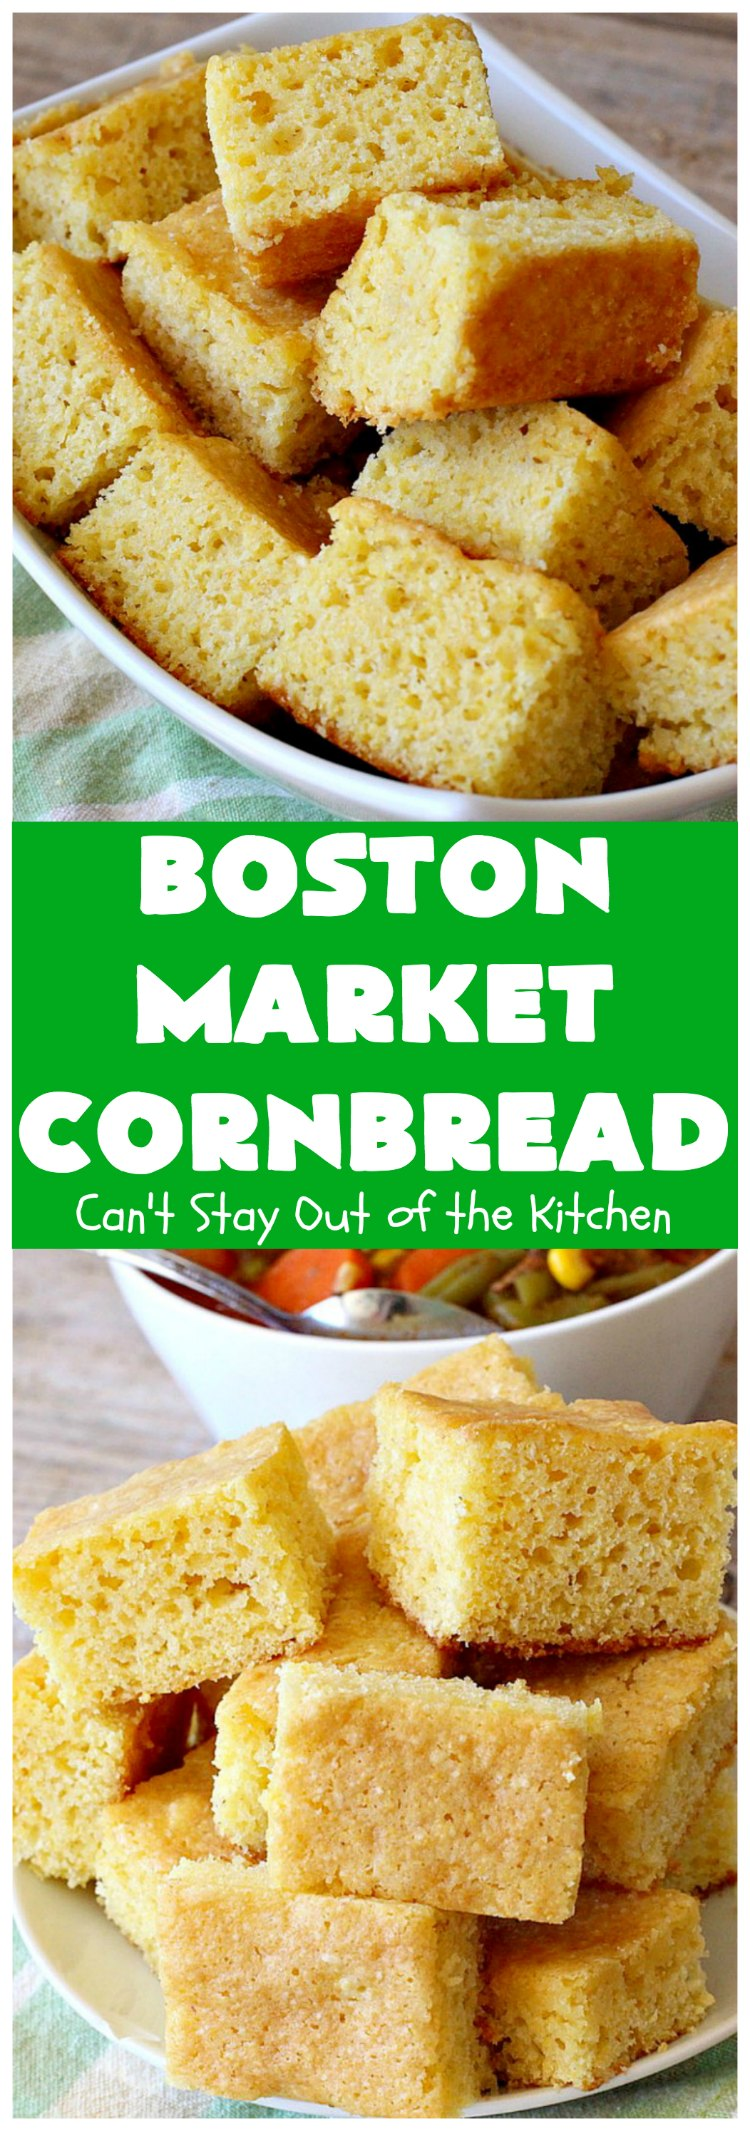 Boston Market Cornbread | Can't Stay Out of the Kitchen